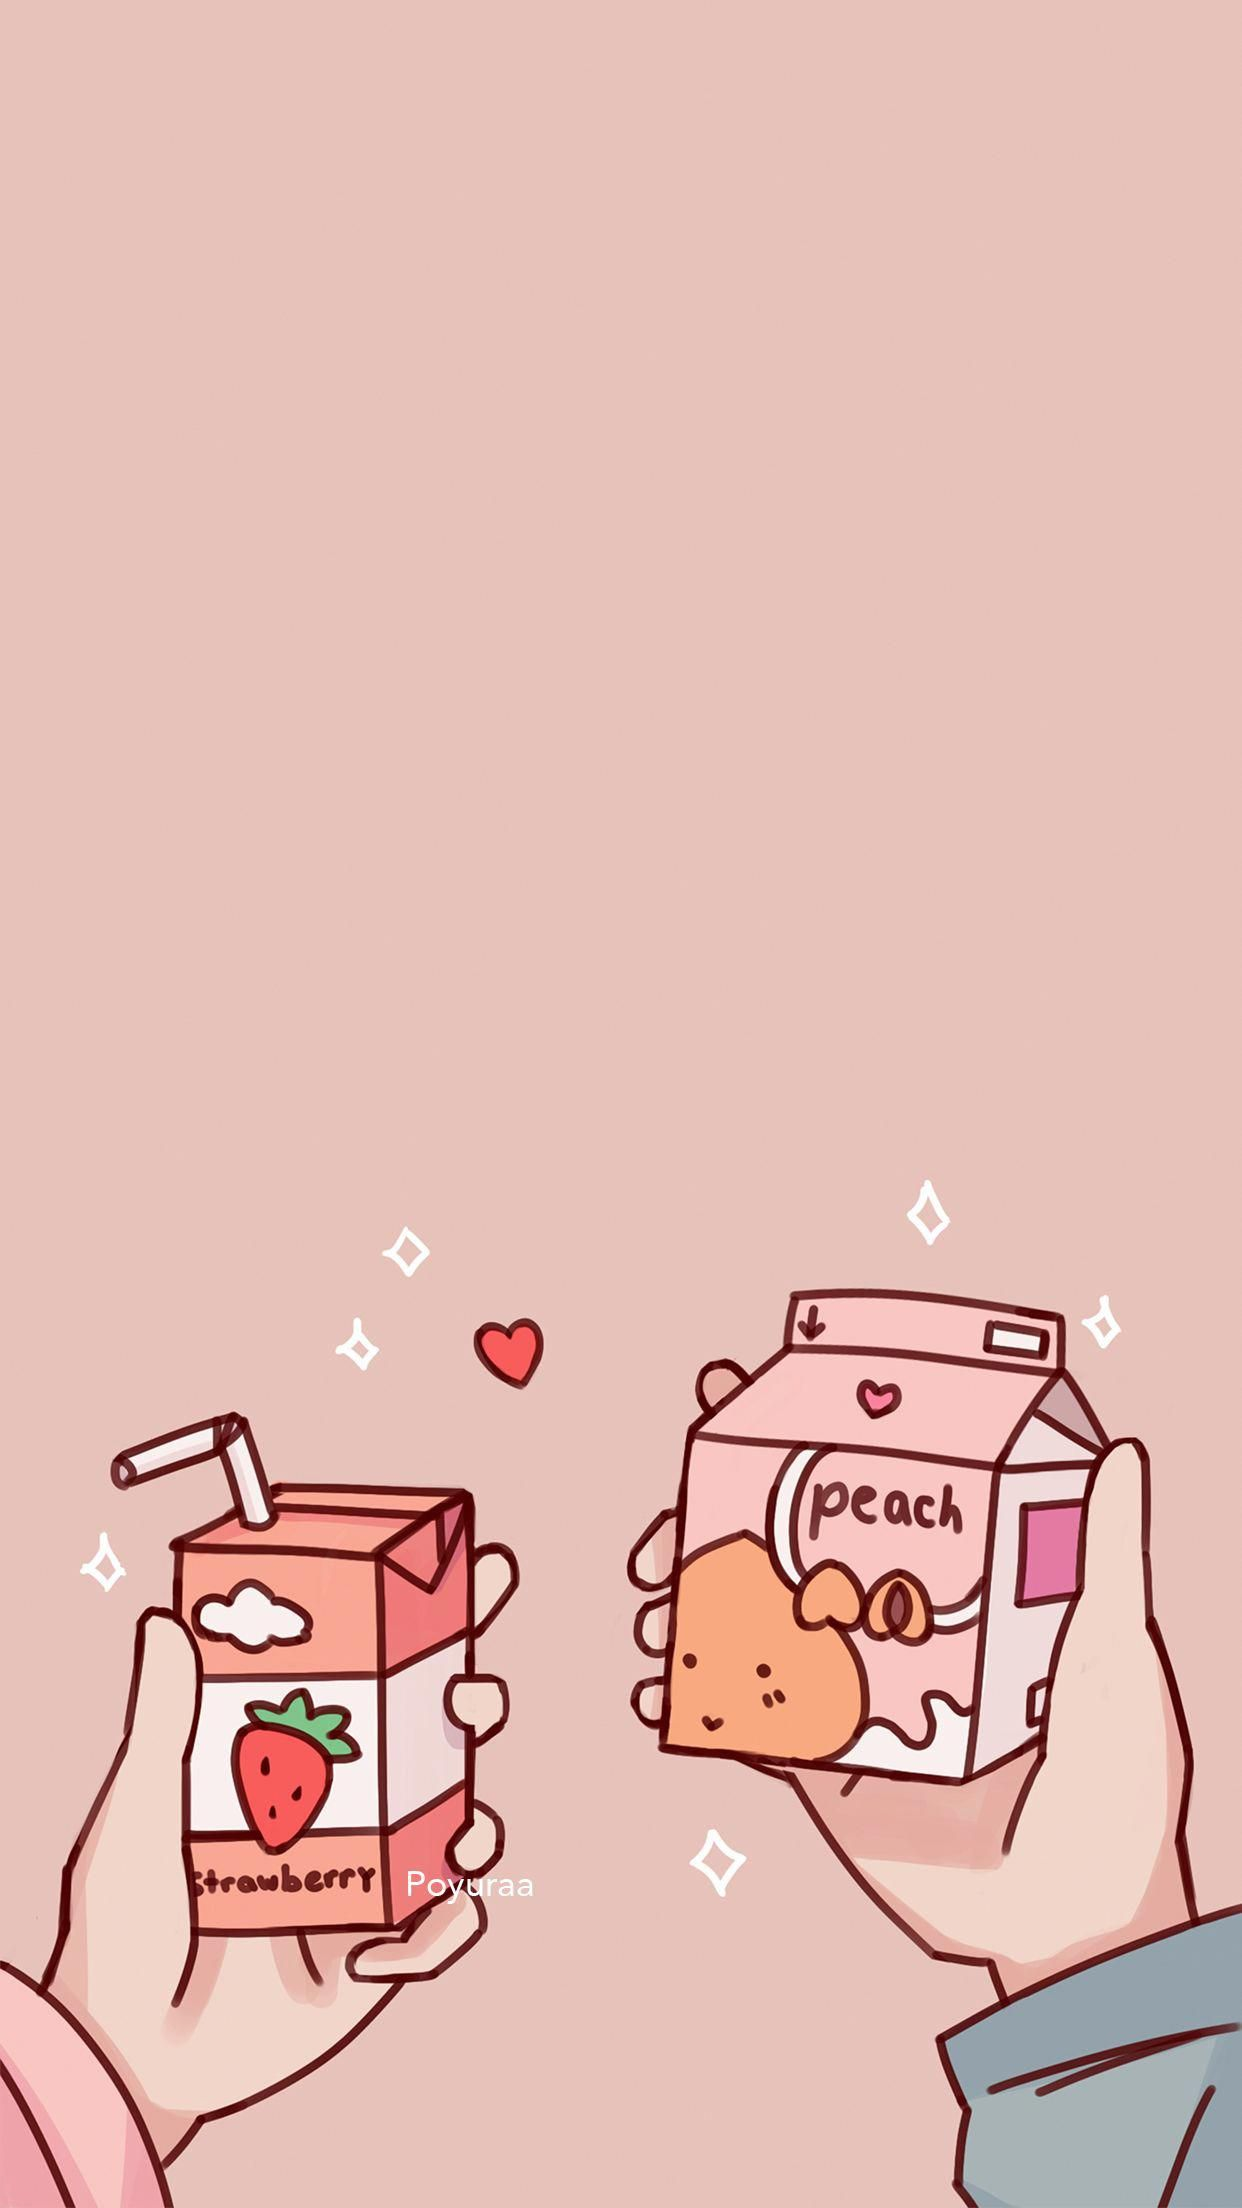 Cute Anime Stawberry Peach Milk Phone Wallpaper made by